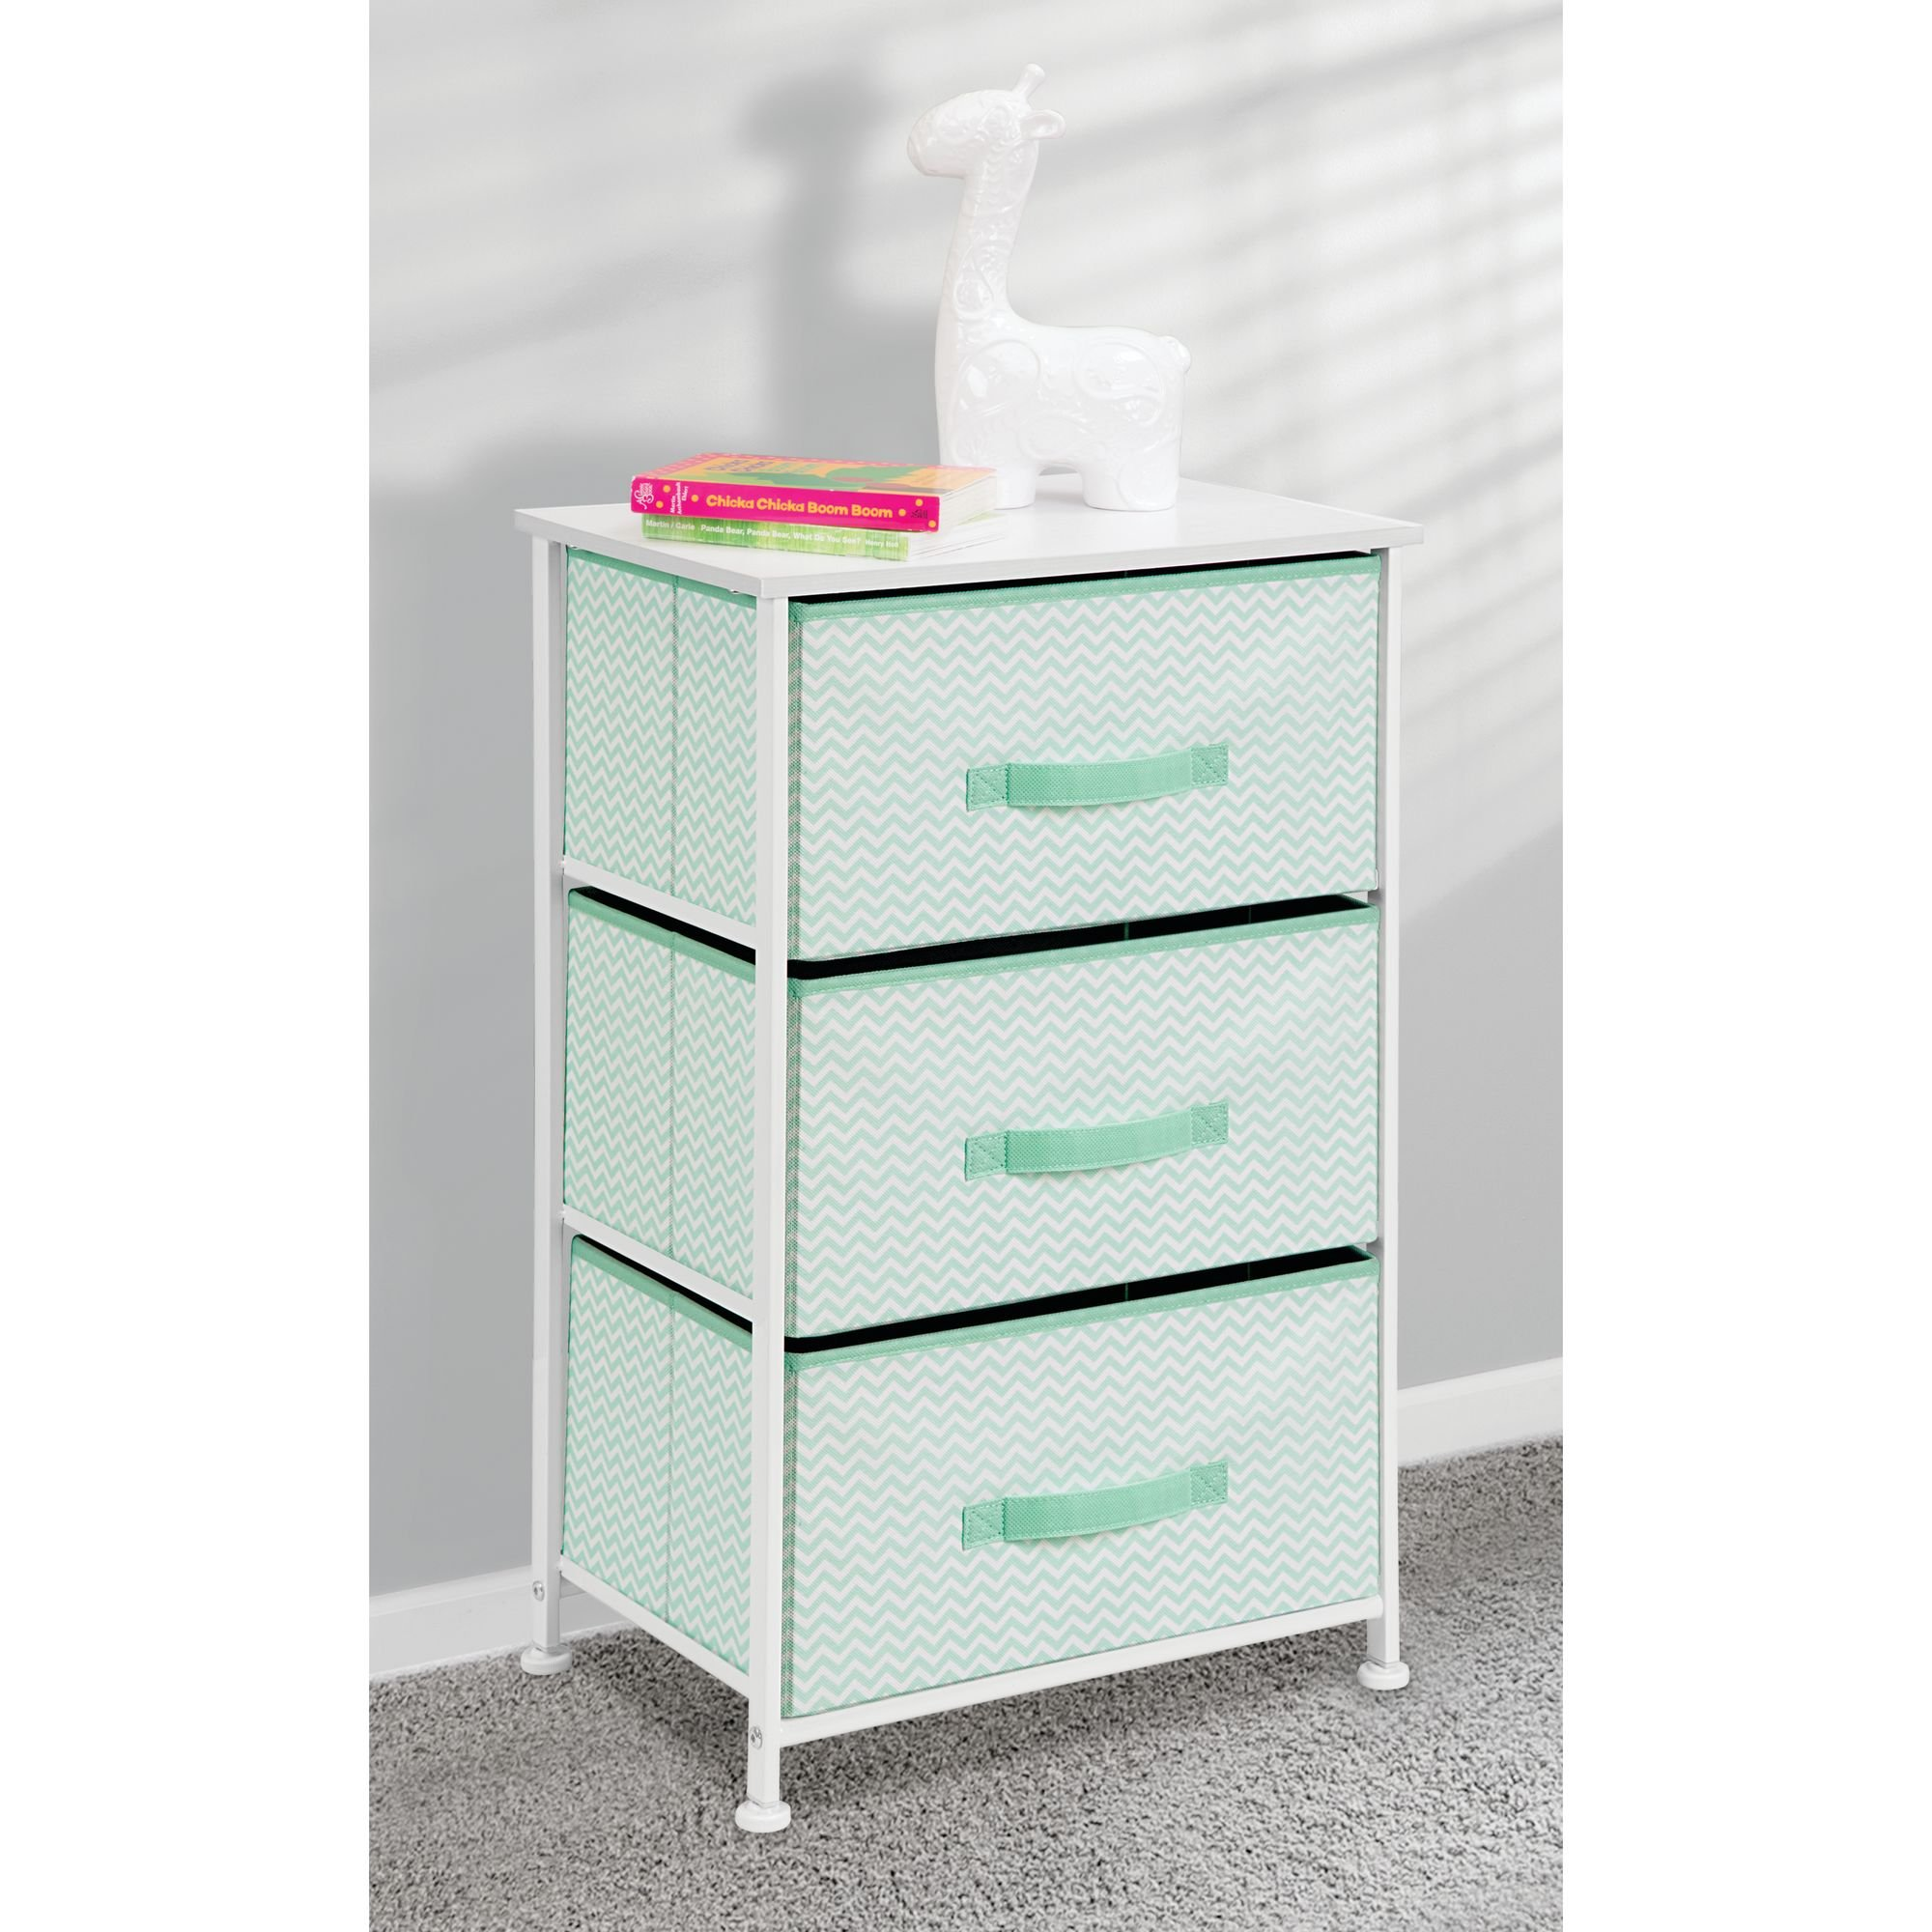 mDesign Vertical Dresser Storage Tower - Sturdy Steel Frame, Wood Top, Easy Pull Fabric Bins - Organizer Unit for Bedroom, Hallway, Entryway, Closets - Chevron Print - 3 Drawers, Mint/White by mDesign (Image #2)